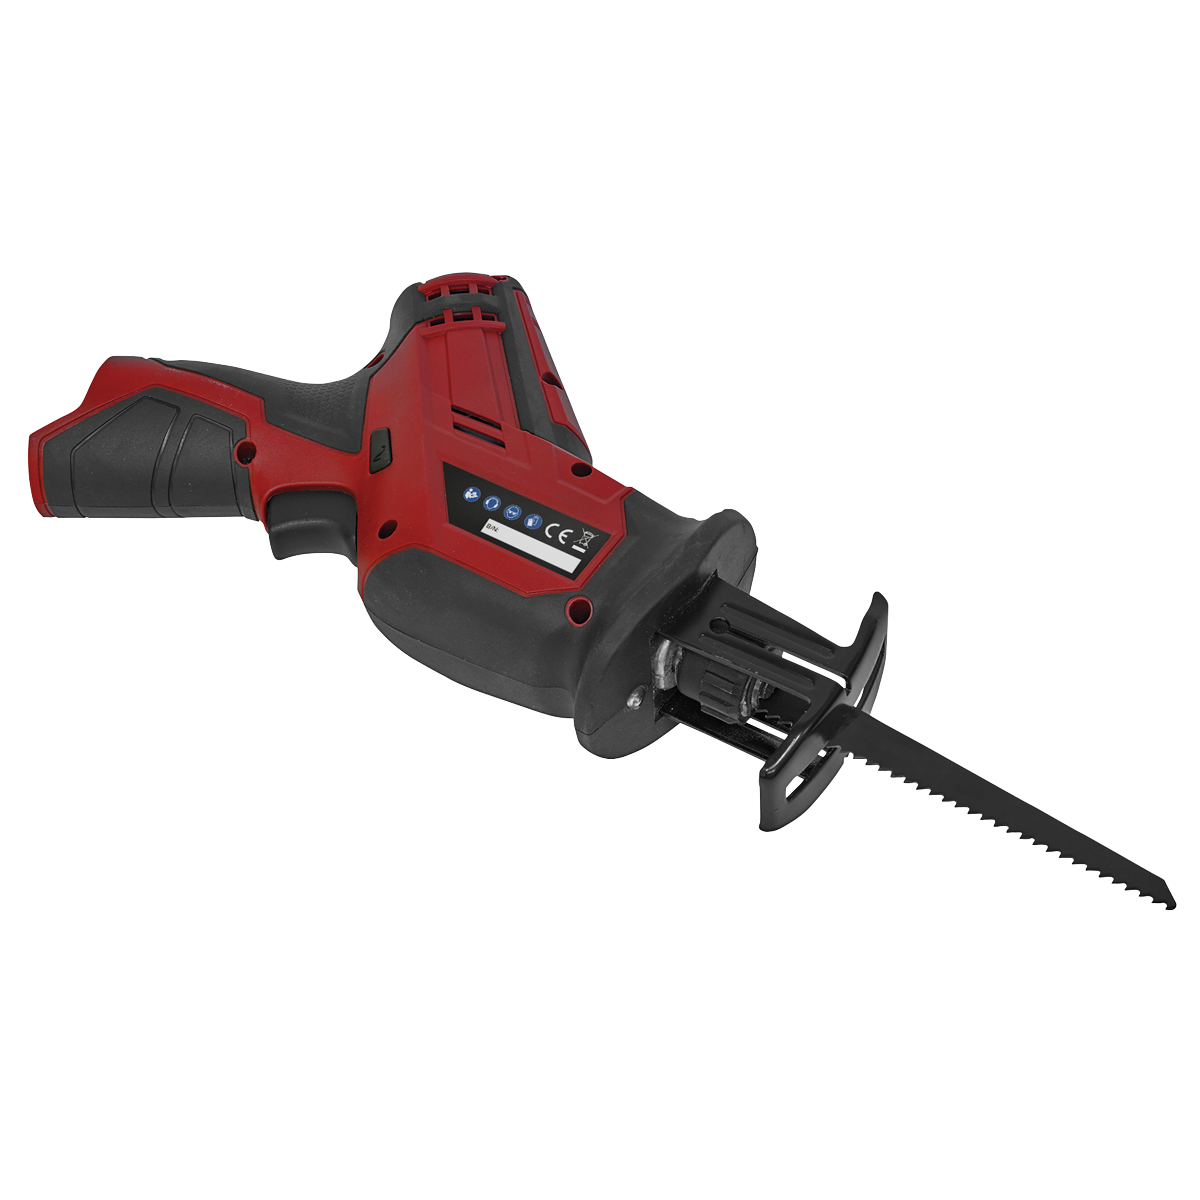 Cordless Reciprocating Saw 12V - Body Only